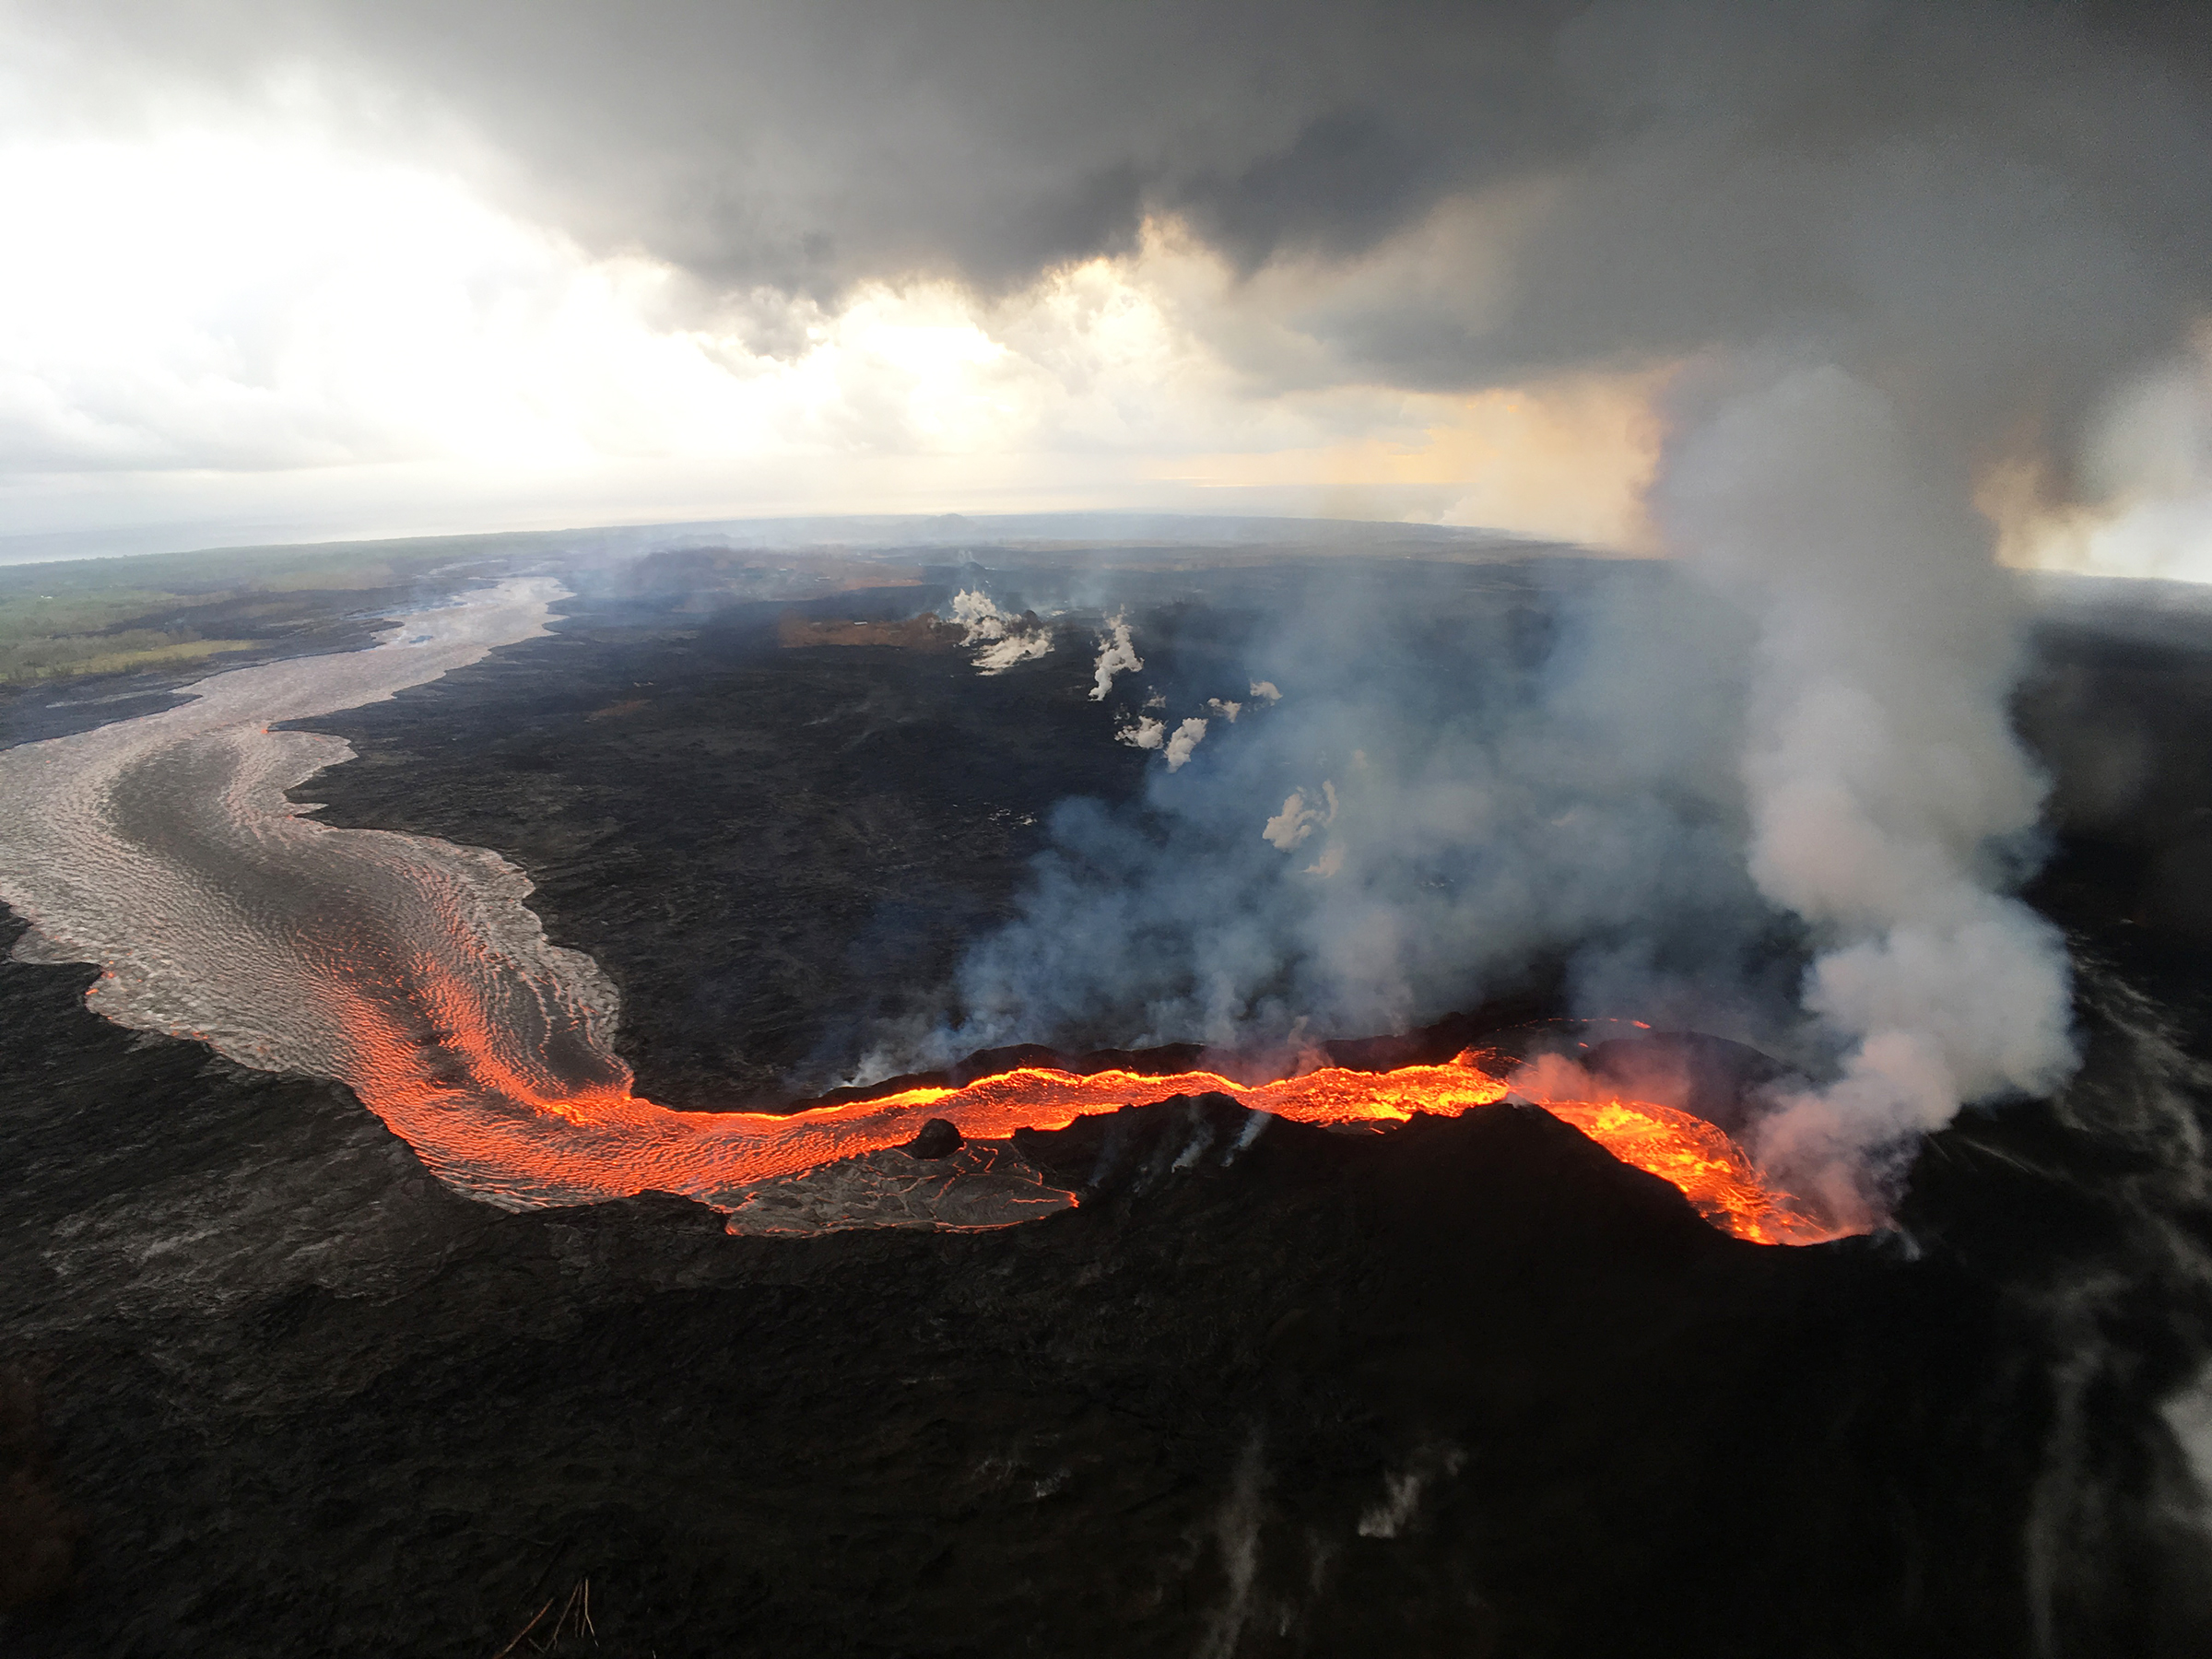 What We've Learned From Kīlauea's 2018 Lower East Rift Zone Eruption